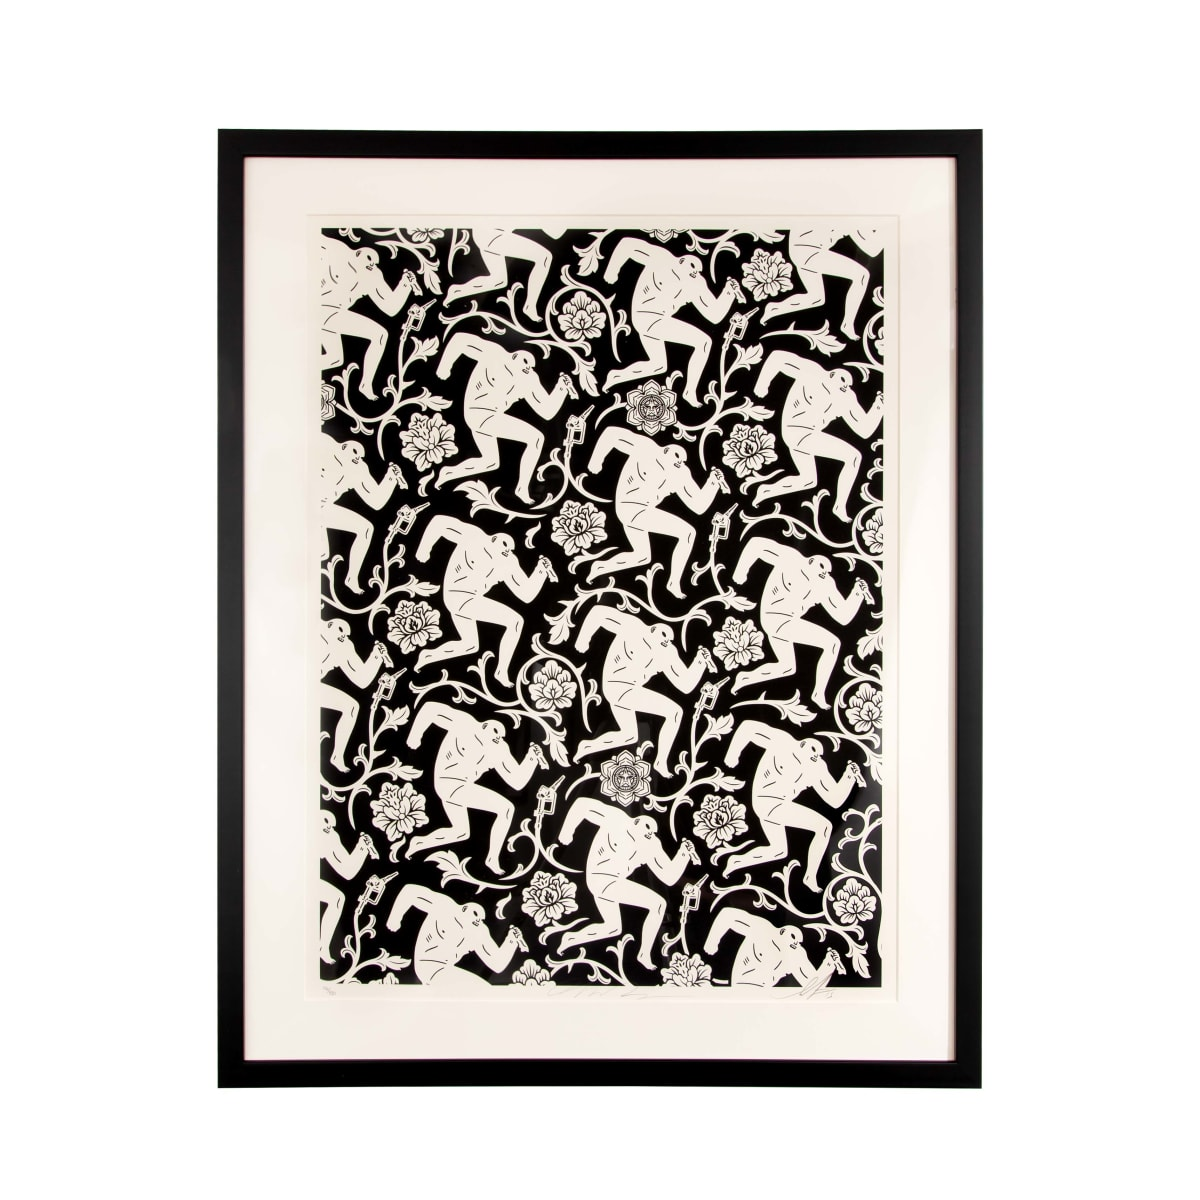 Cleon Peterson and Shepard Fairey Pattern of Corruption, 2015 Screenprint on paper 45.7 x 61 cm edition of 150